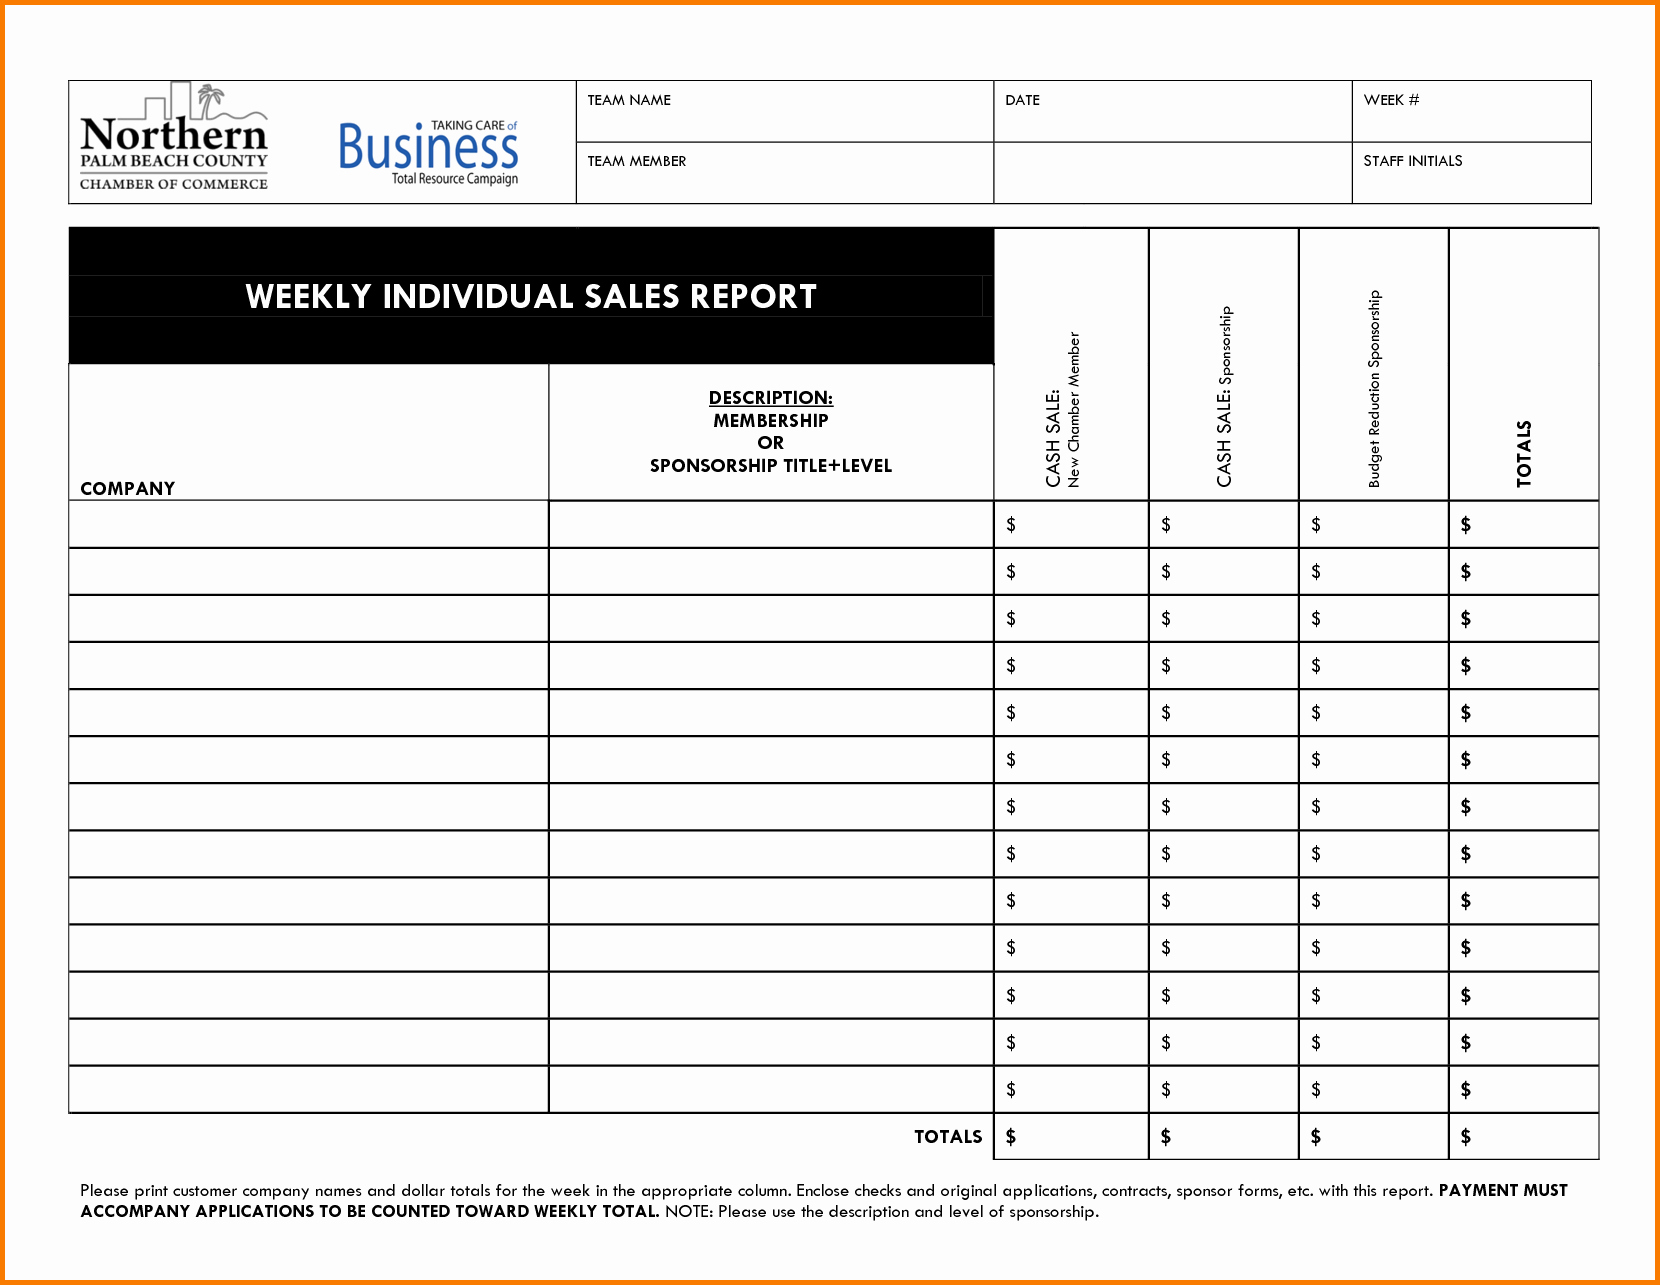 Sales Activity Report Template Best Of Weekly Sales Report Template